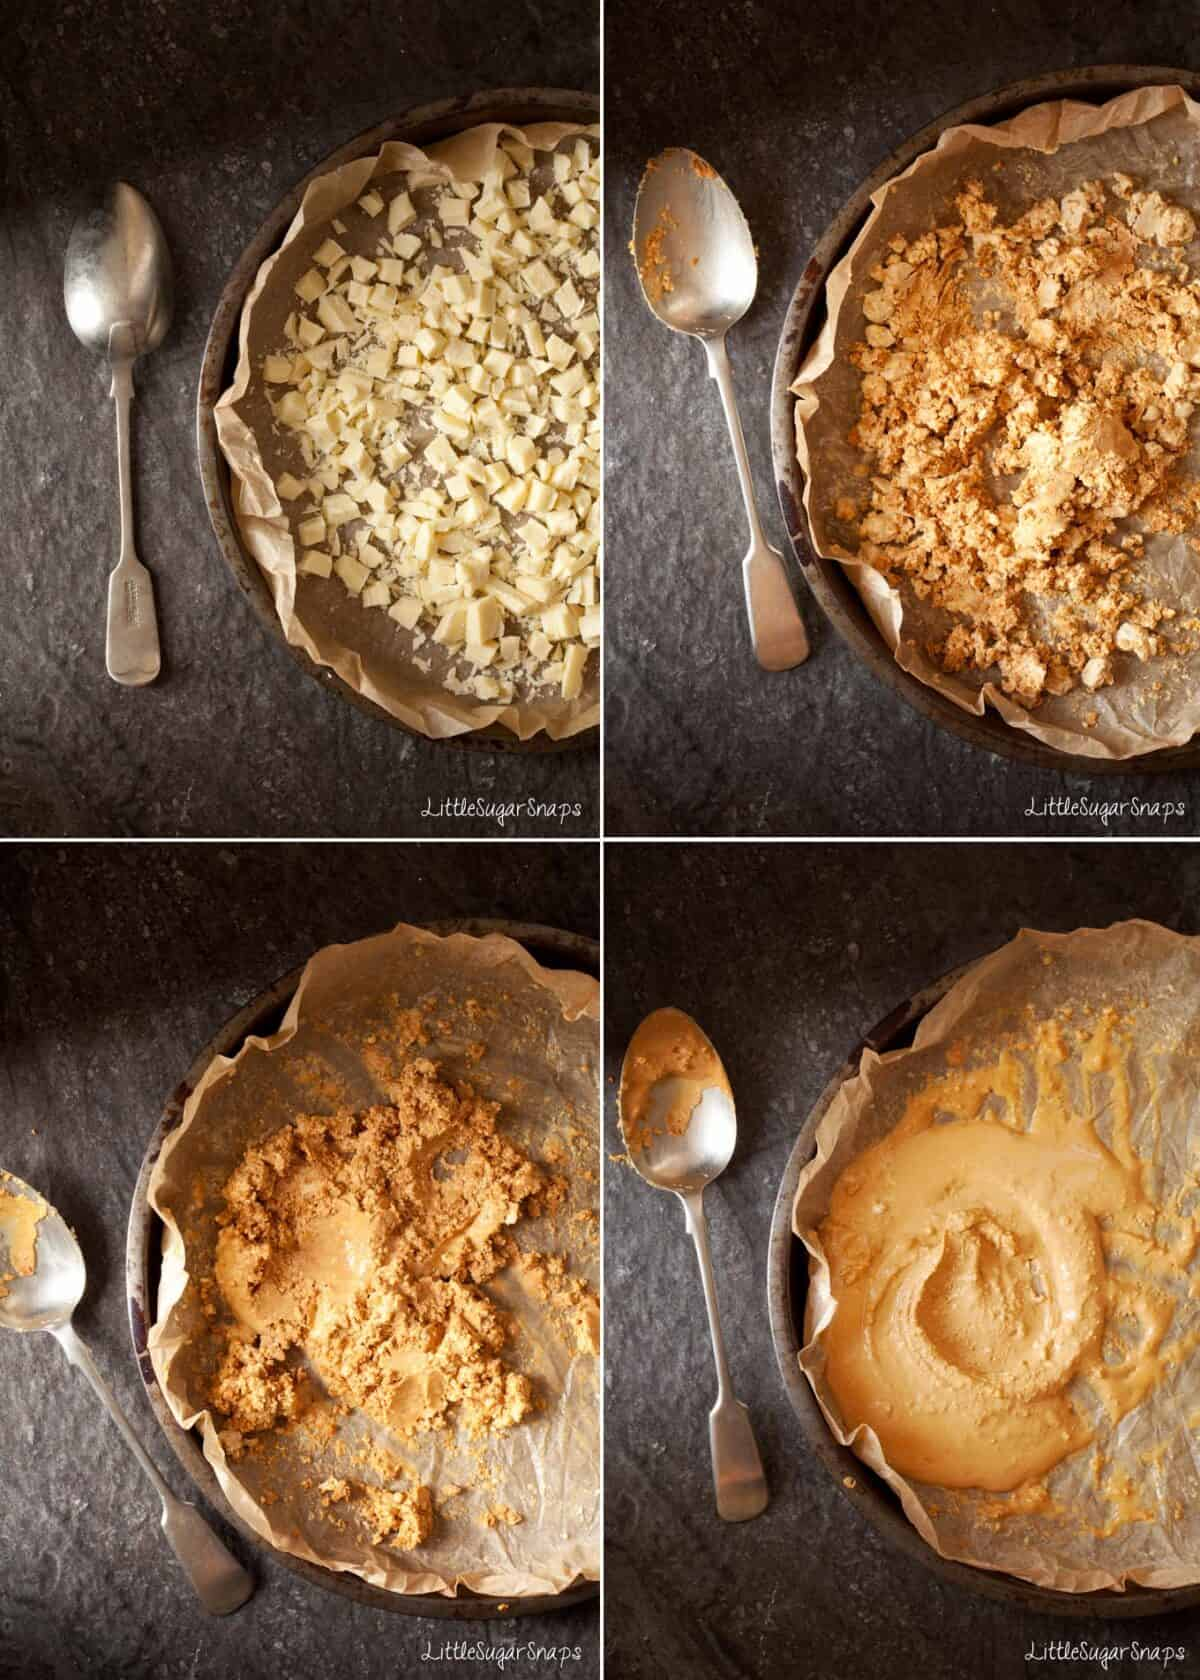 step by step images of making Caramelized White Chocolate